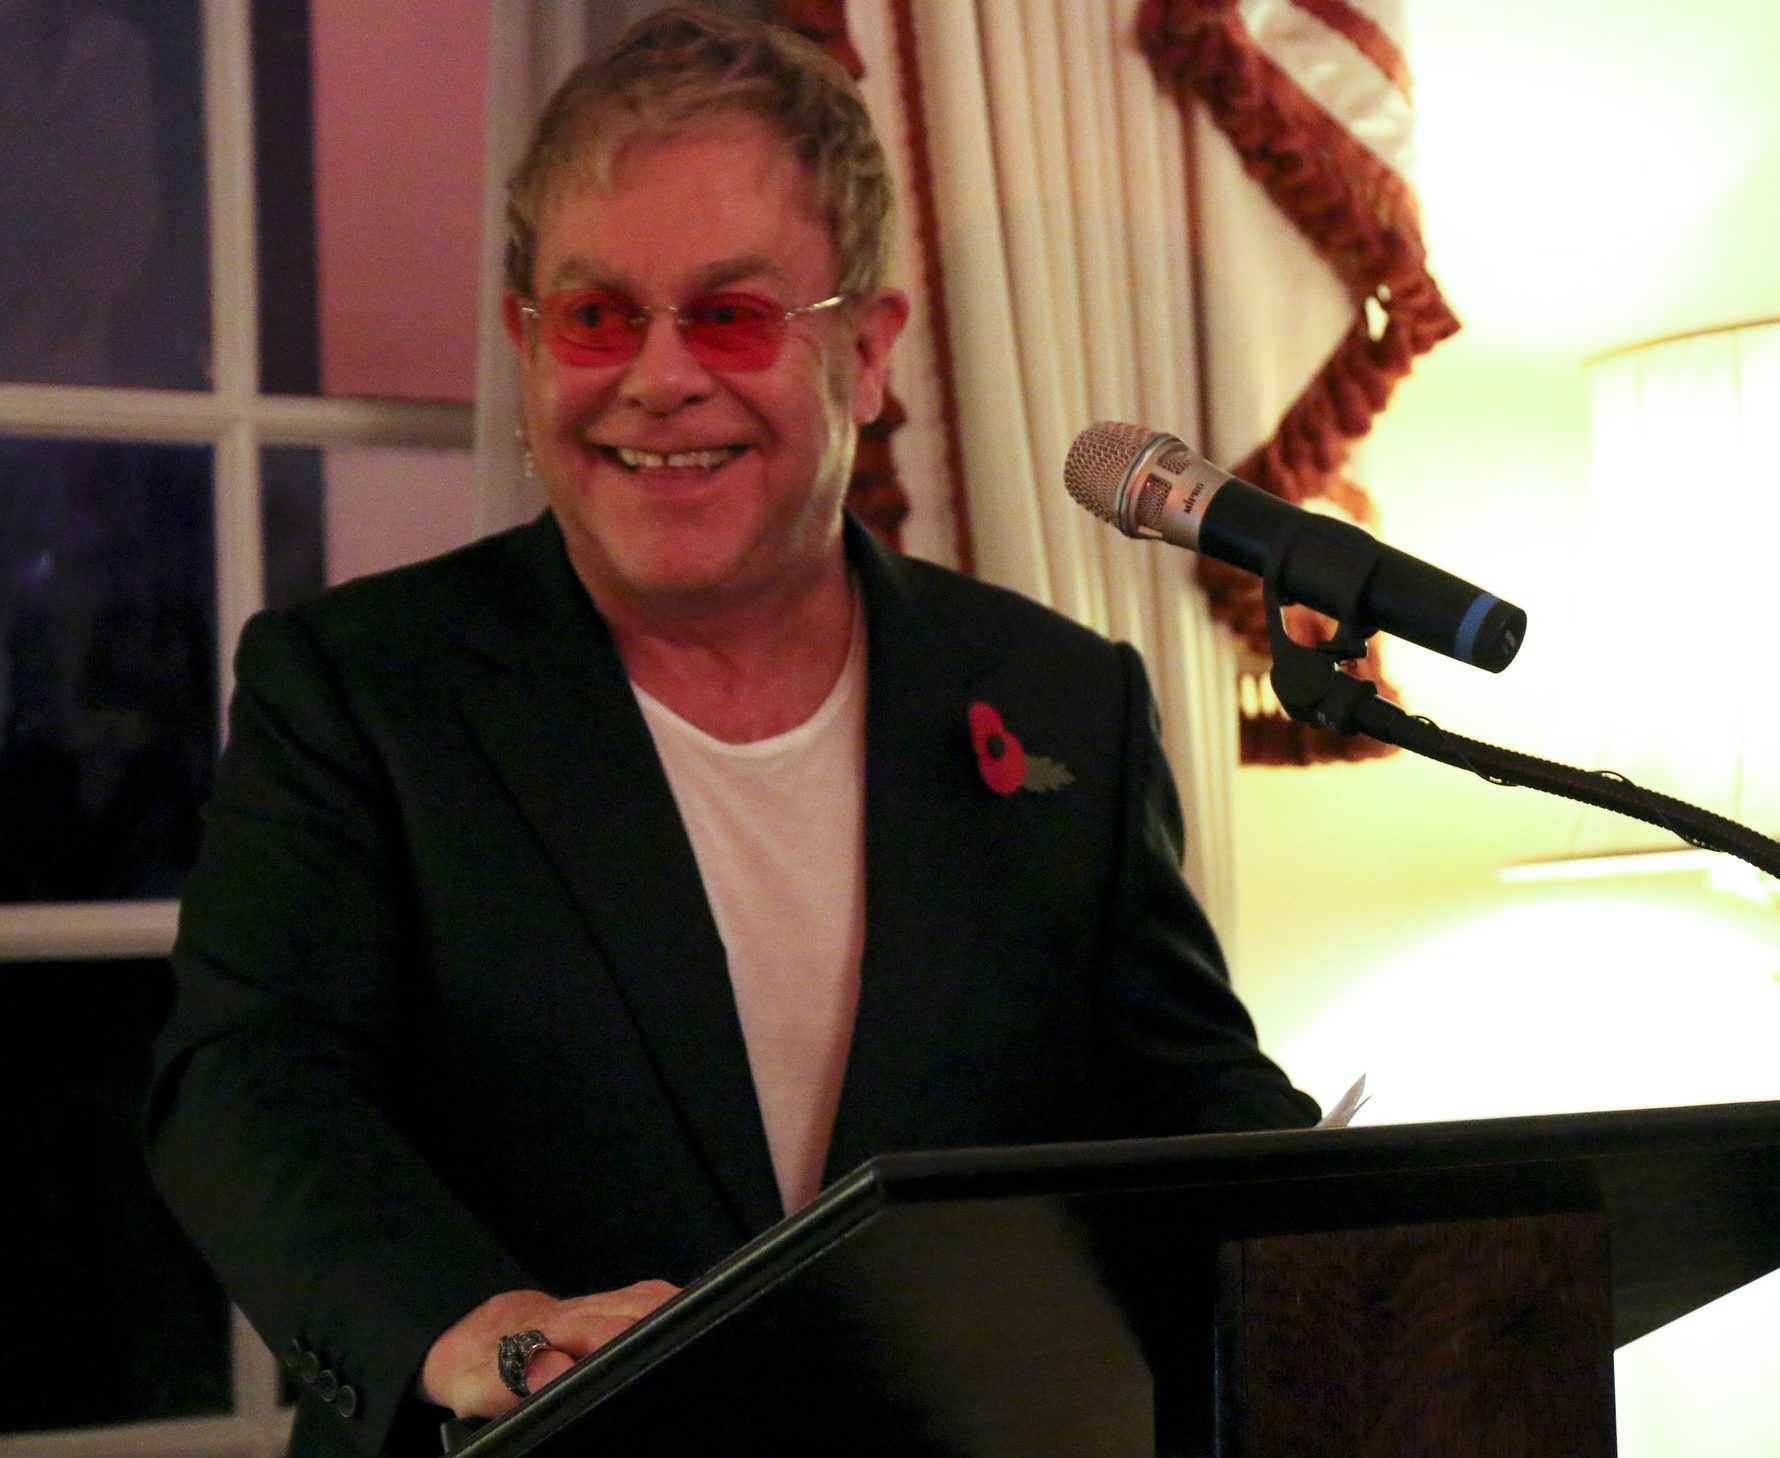 22787686202 15a1dc2fde k e1616671371143 23 Things You Didn't Know About Elton John